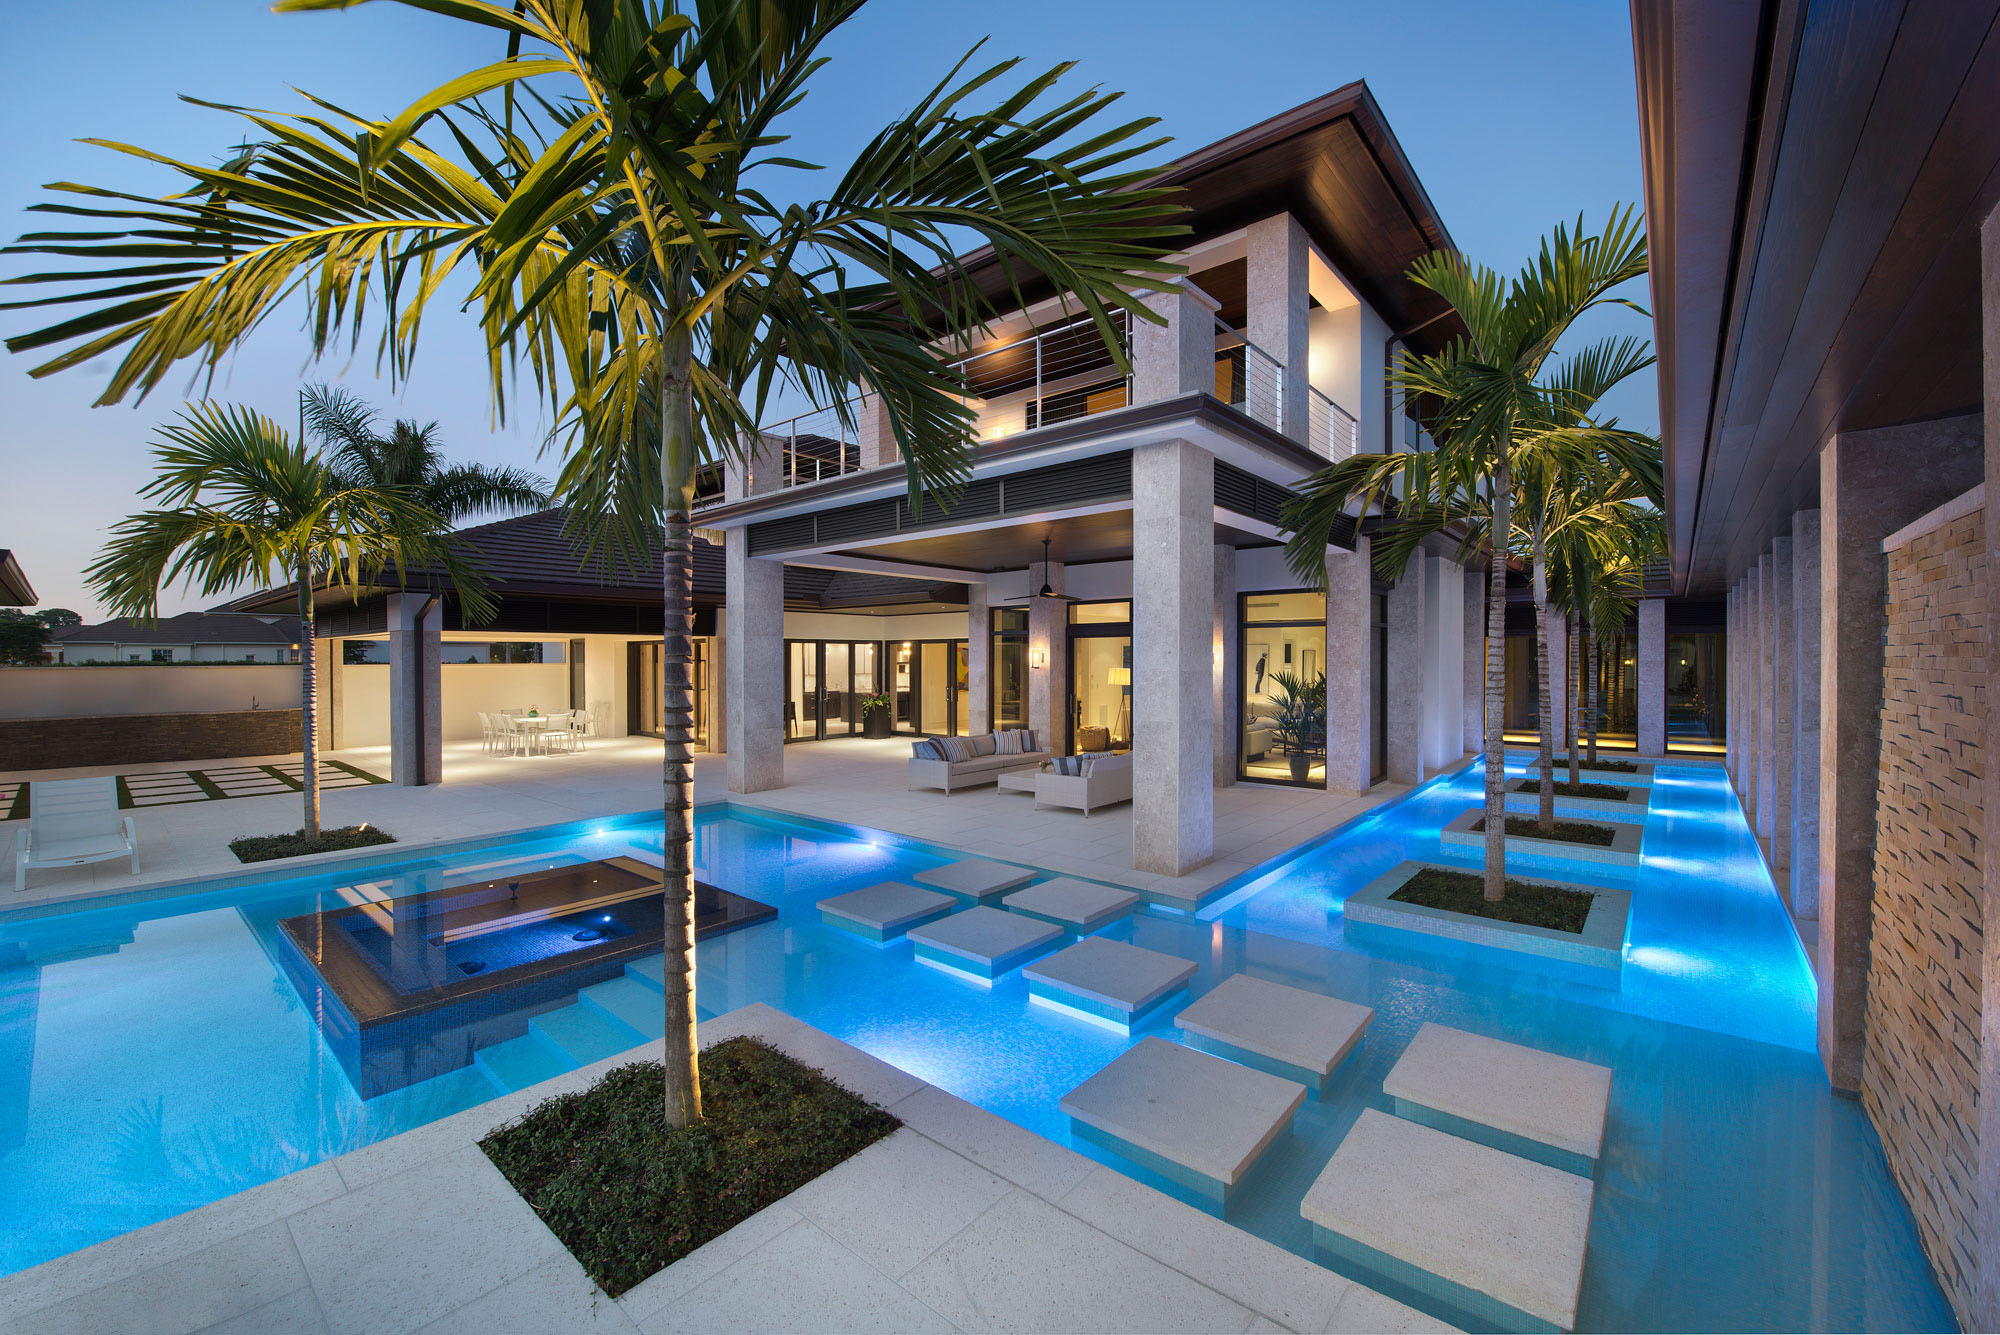 Custom dream home in florida with elegant swimming pool for Florida pool homes